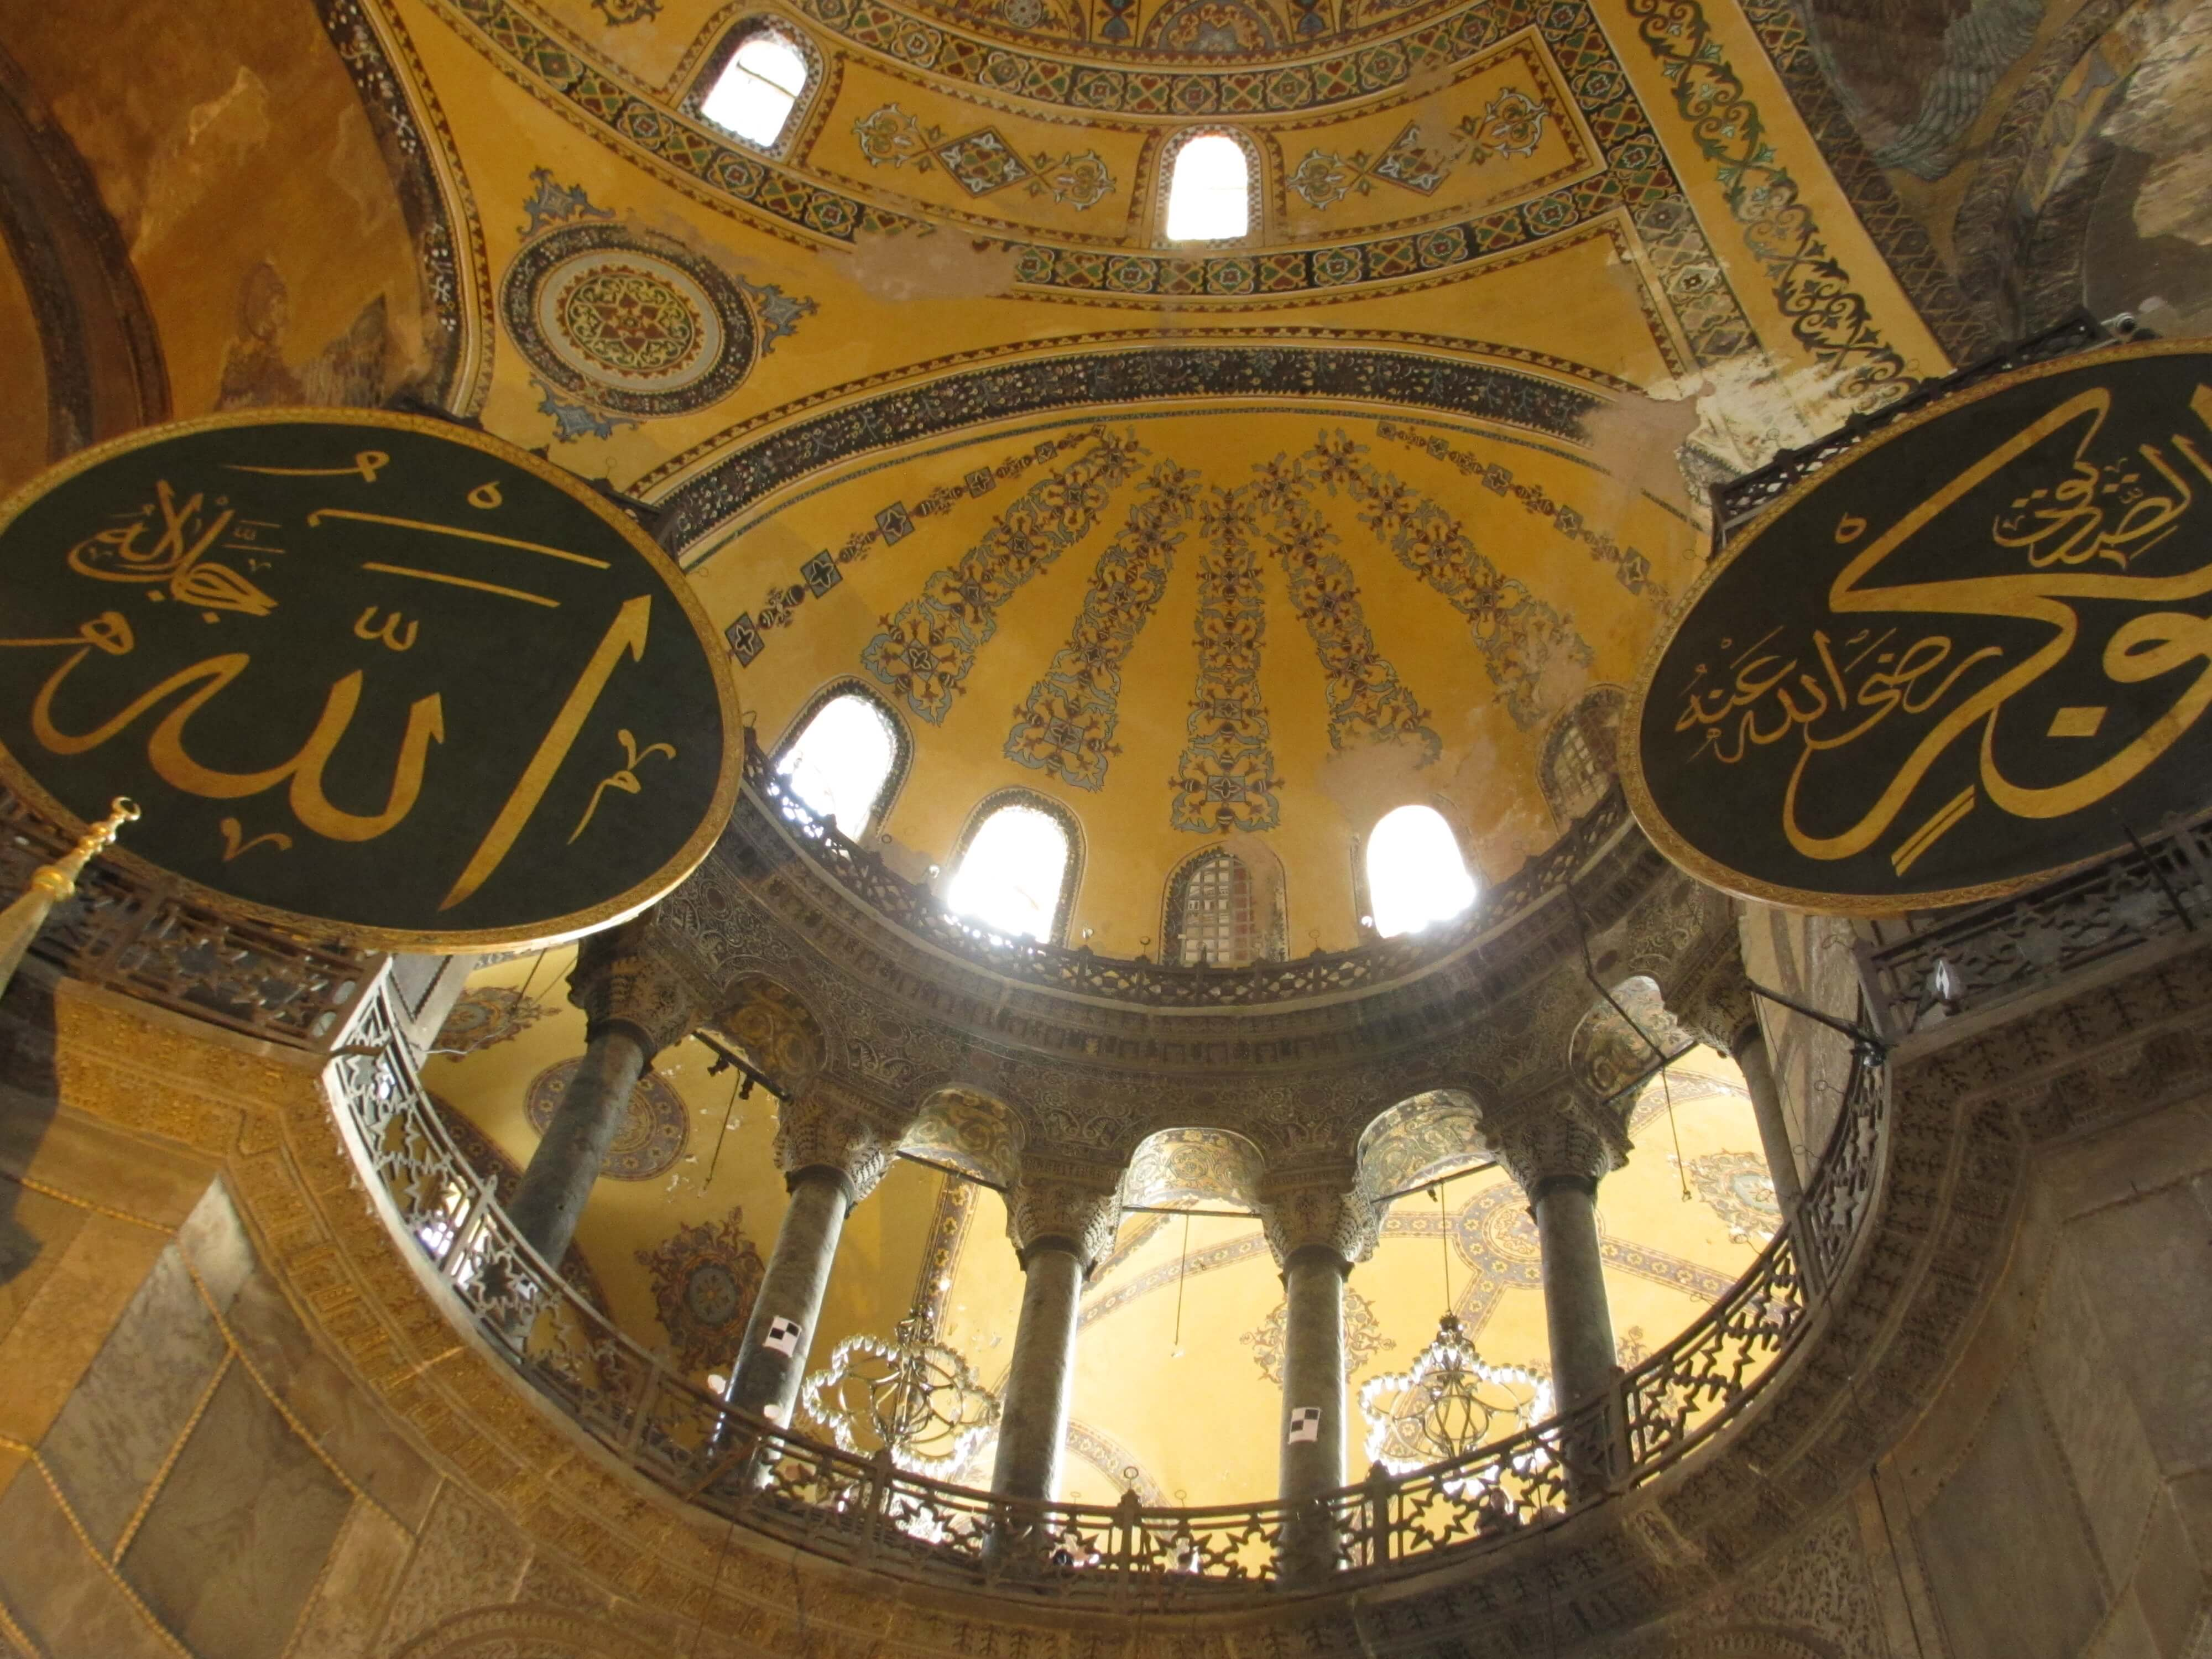 Detail of the painted ceiling of Hagia Sophia, Istanbul